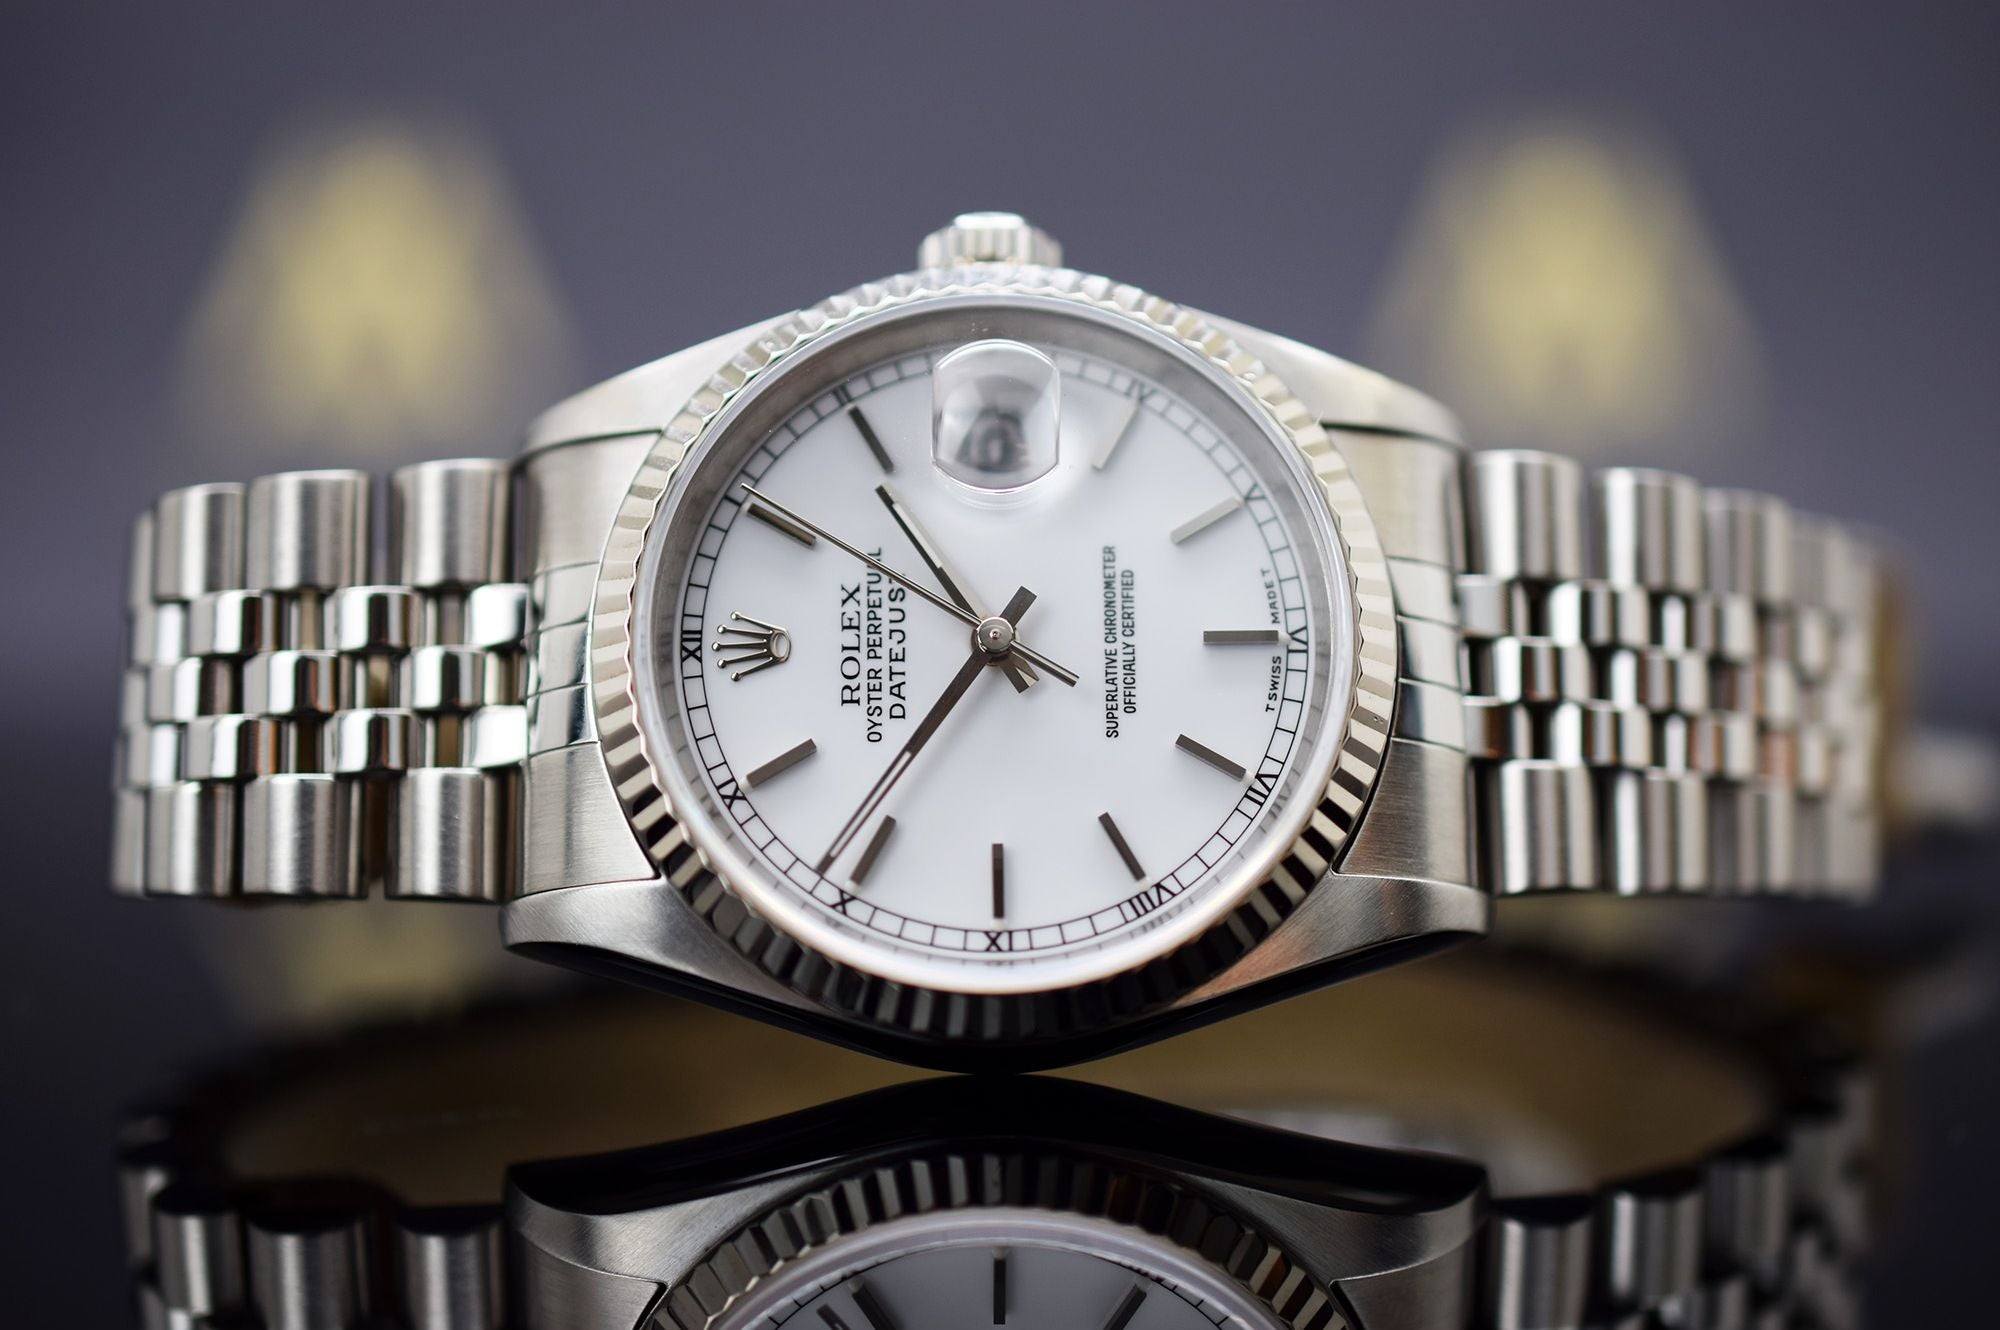 Rolex Oyster Perpetual Datejust 36mm - Aus 1996